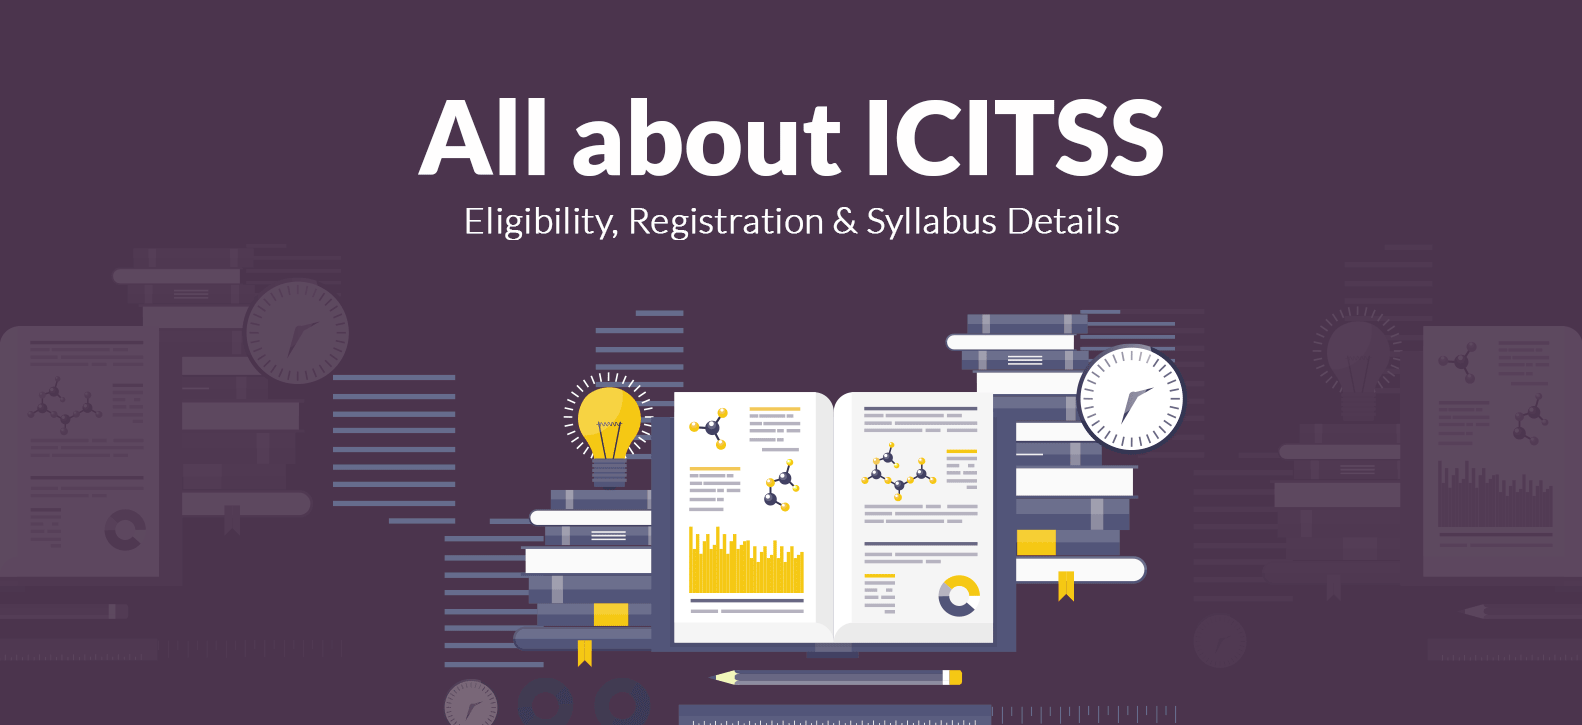 All about ICITSS: Eligibility, Registration and Syllabus Details